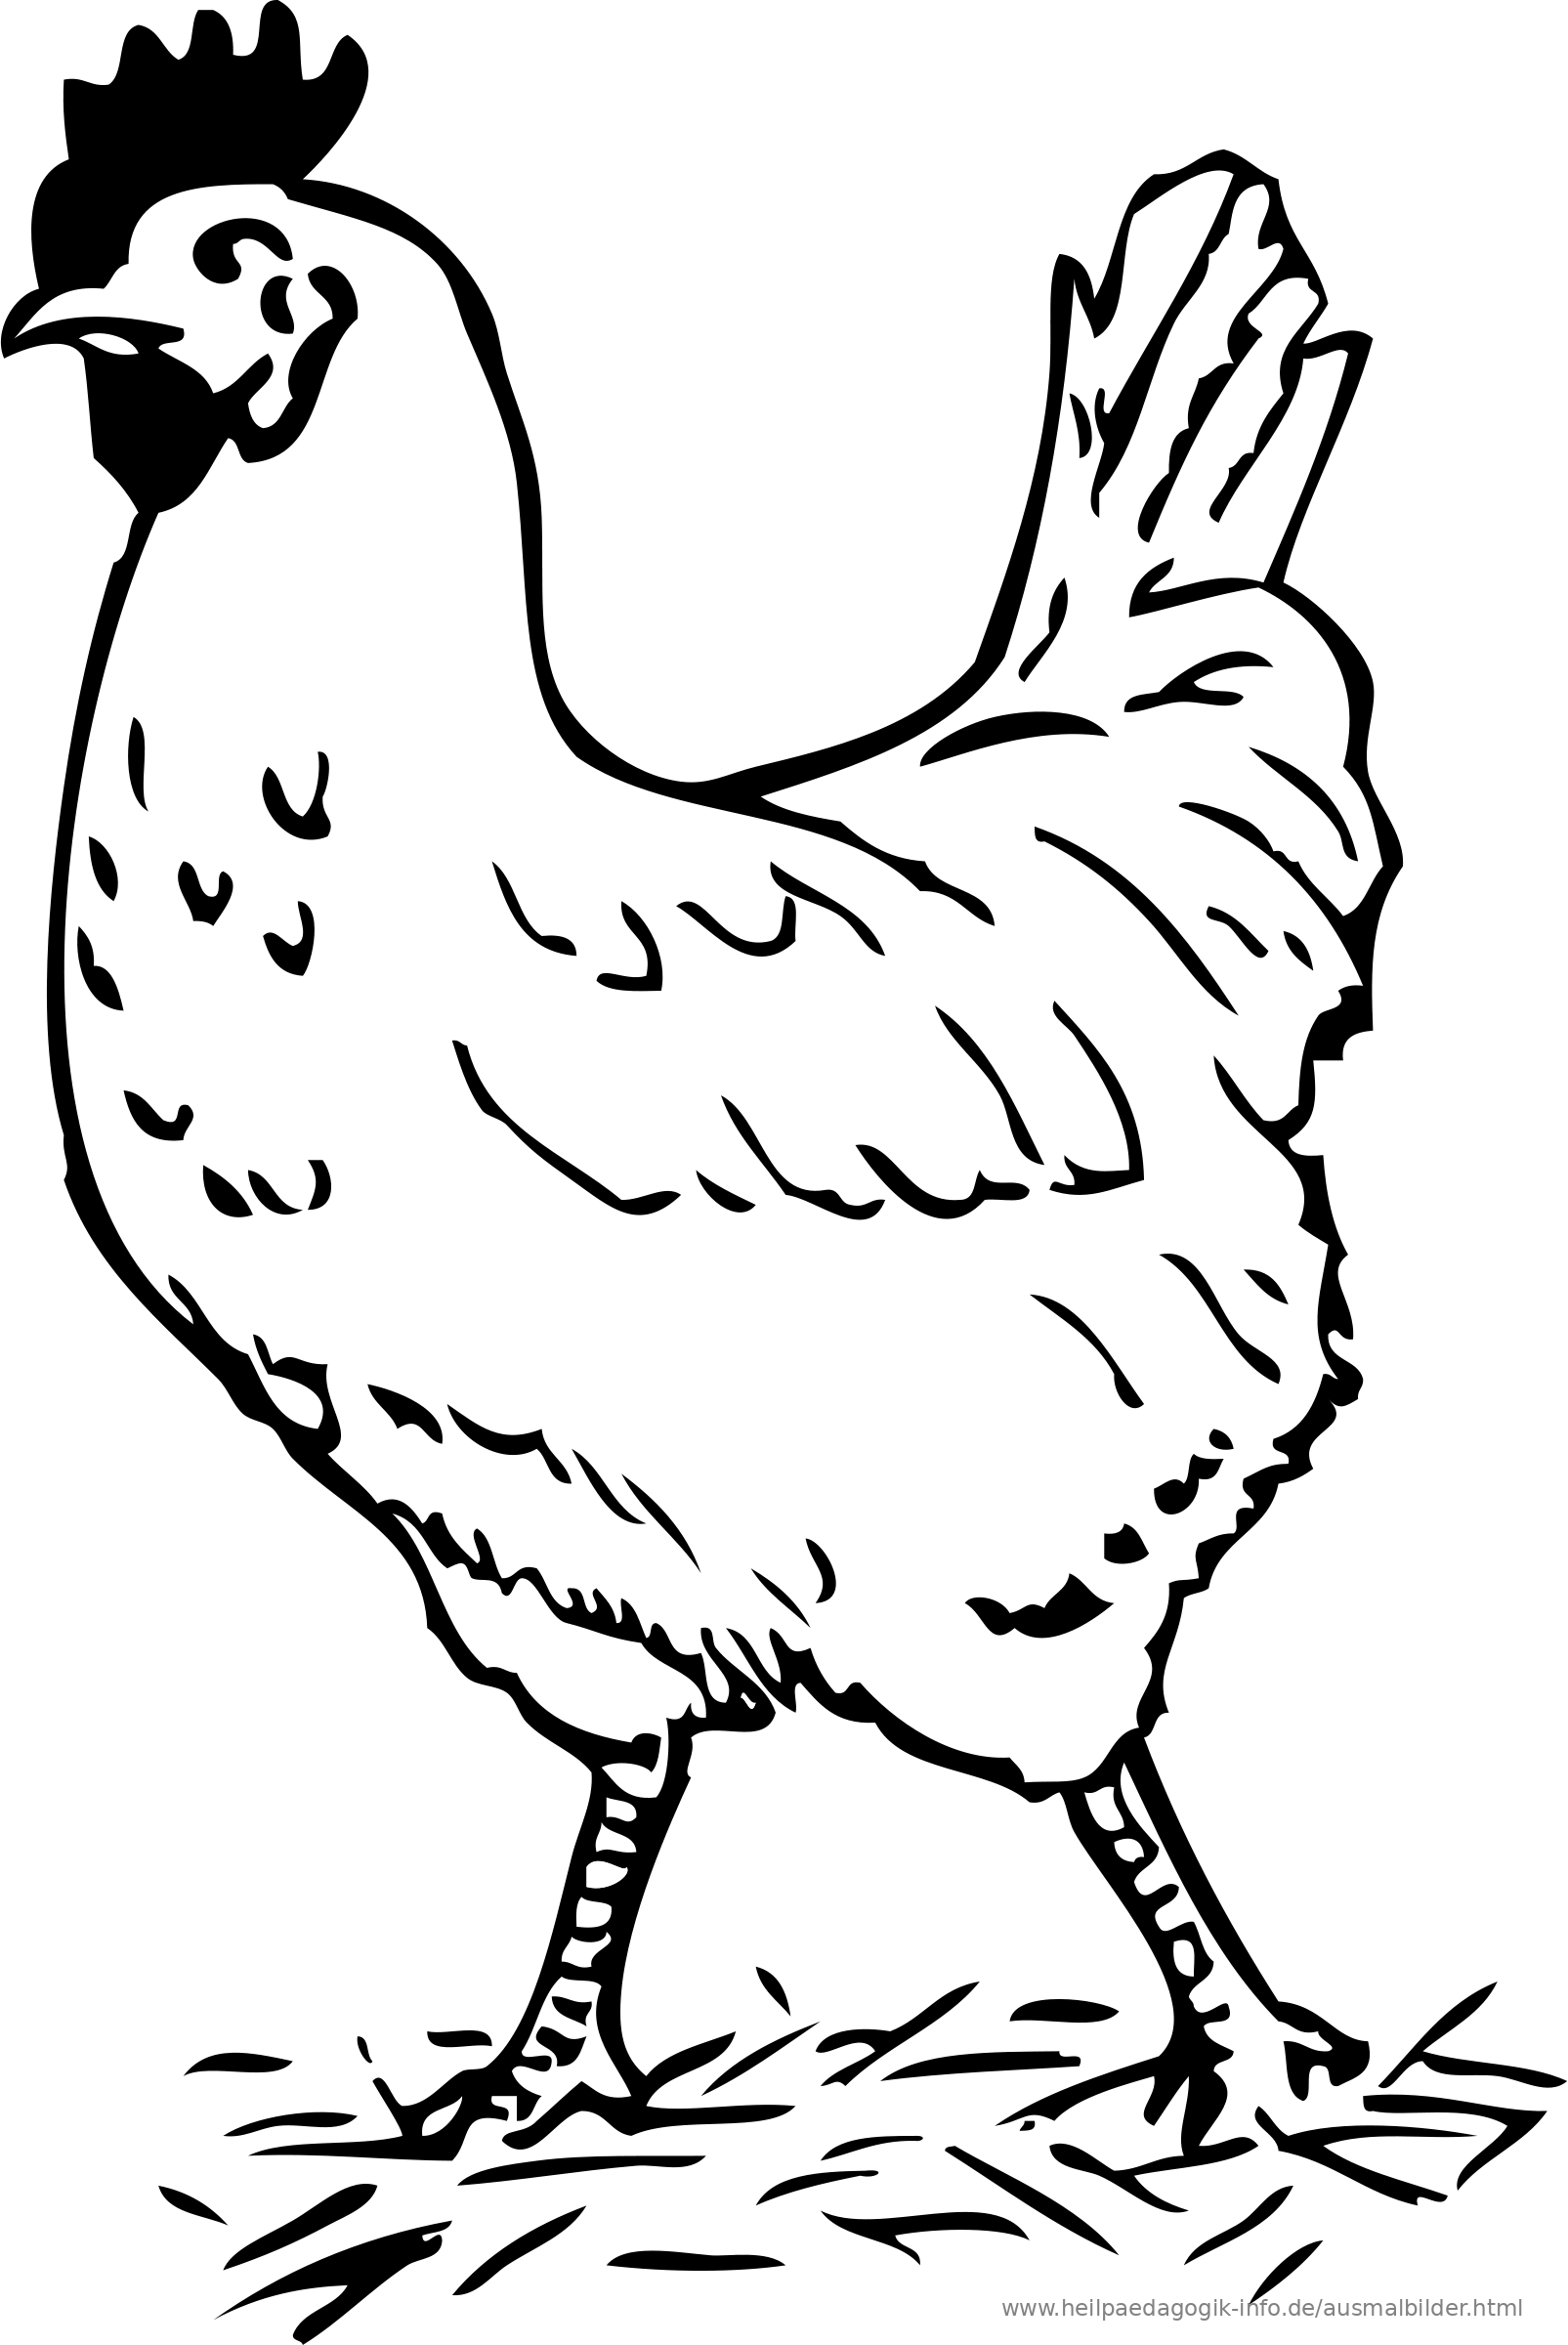 Viewtopic in addition Bone Structure Birds Bird Bone Anatomy Human Anatomy Lesson 2 in addition Personal Biochar Kilns Portable Factories Diy Septic Cleaning And Guerrilla Grafting as well Livestock Tests And Study Guides besides Avian Vent and Cloaca   Anatomy  26 Physiology. on poultry diagram